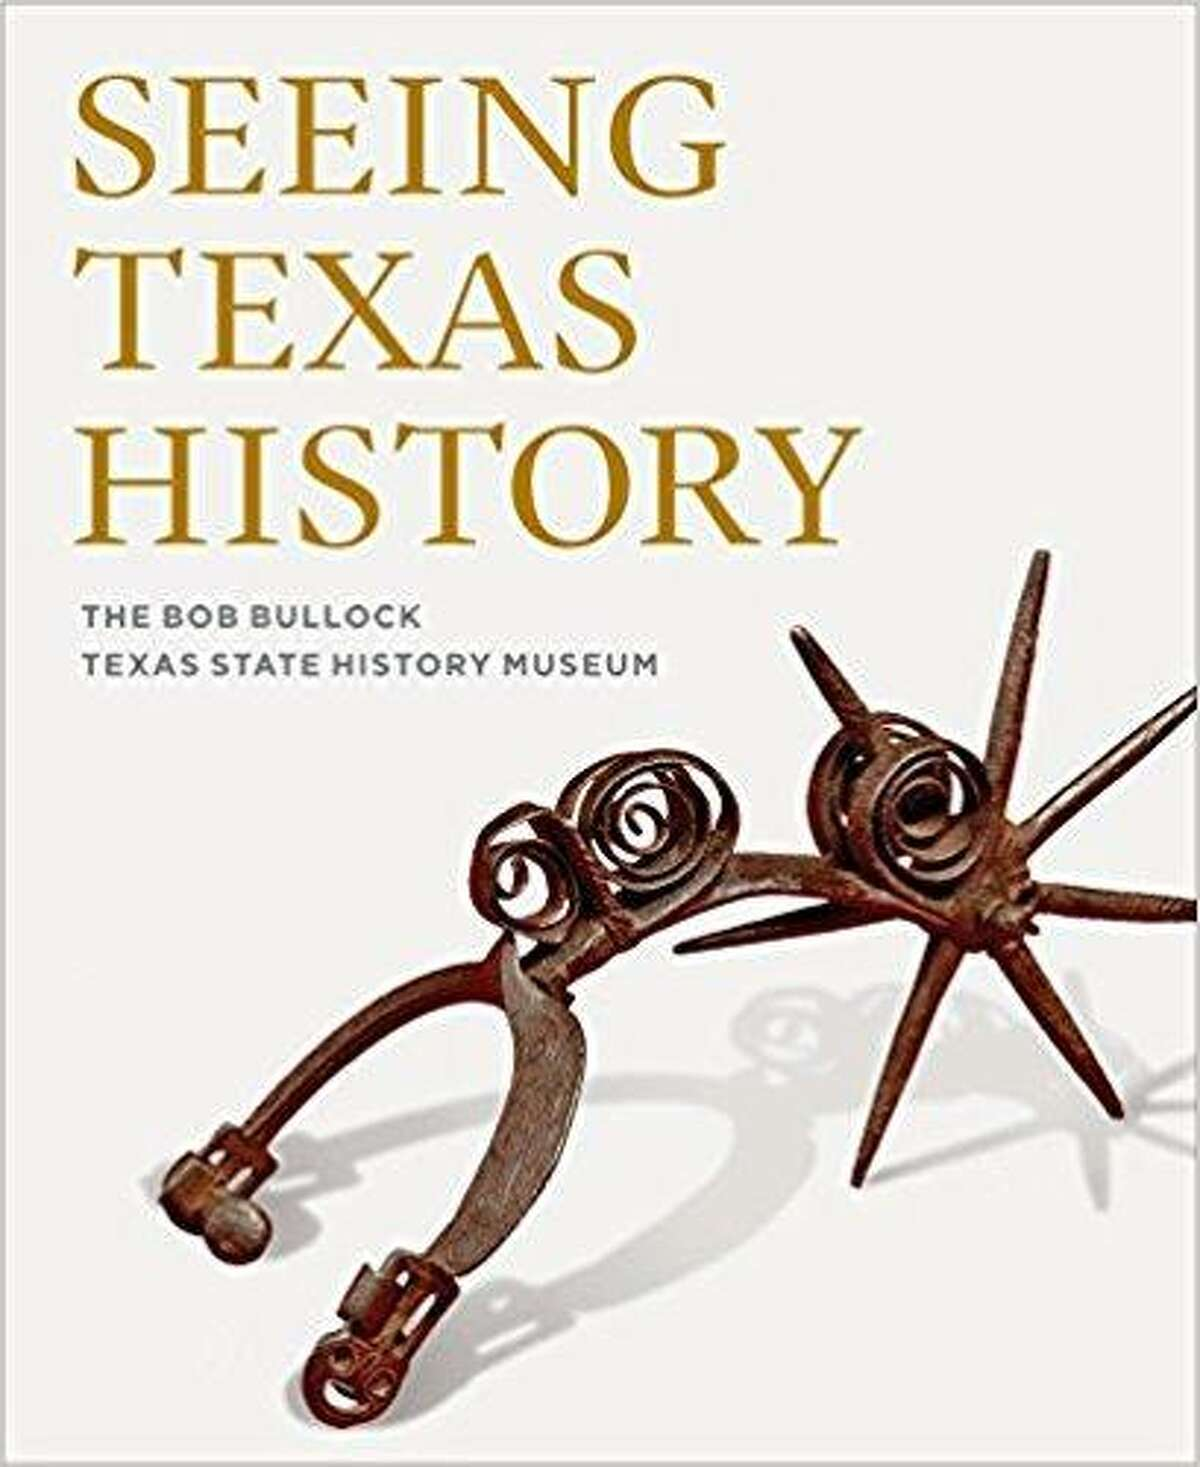 """A hand-forged iron espuela grande (great spur) was on loan to the Bullock Texas State History Museum and used for the 2016 cover of the museum's """"Seeing Texas History book. The spur, believed to be from the Spanish conquistador era, was returned to the Witte in 2012."""